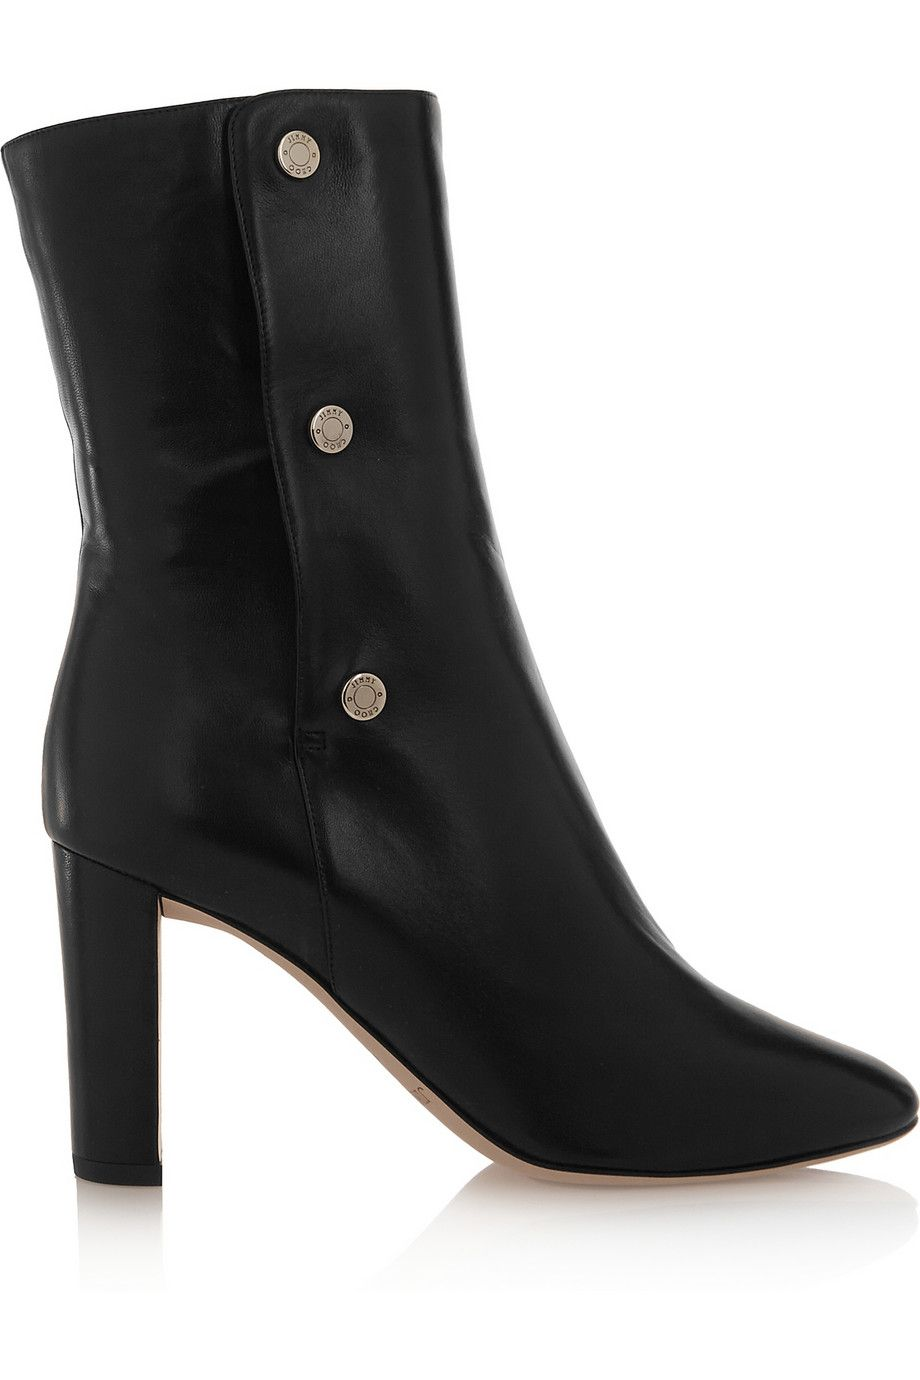 Jimmy Choo - Dayno leather ankle boots